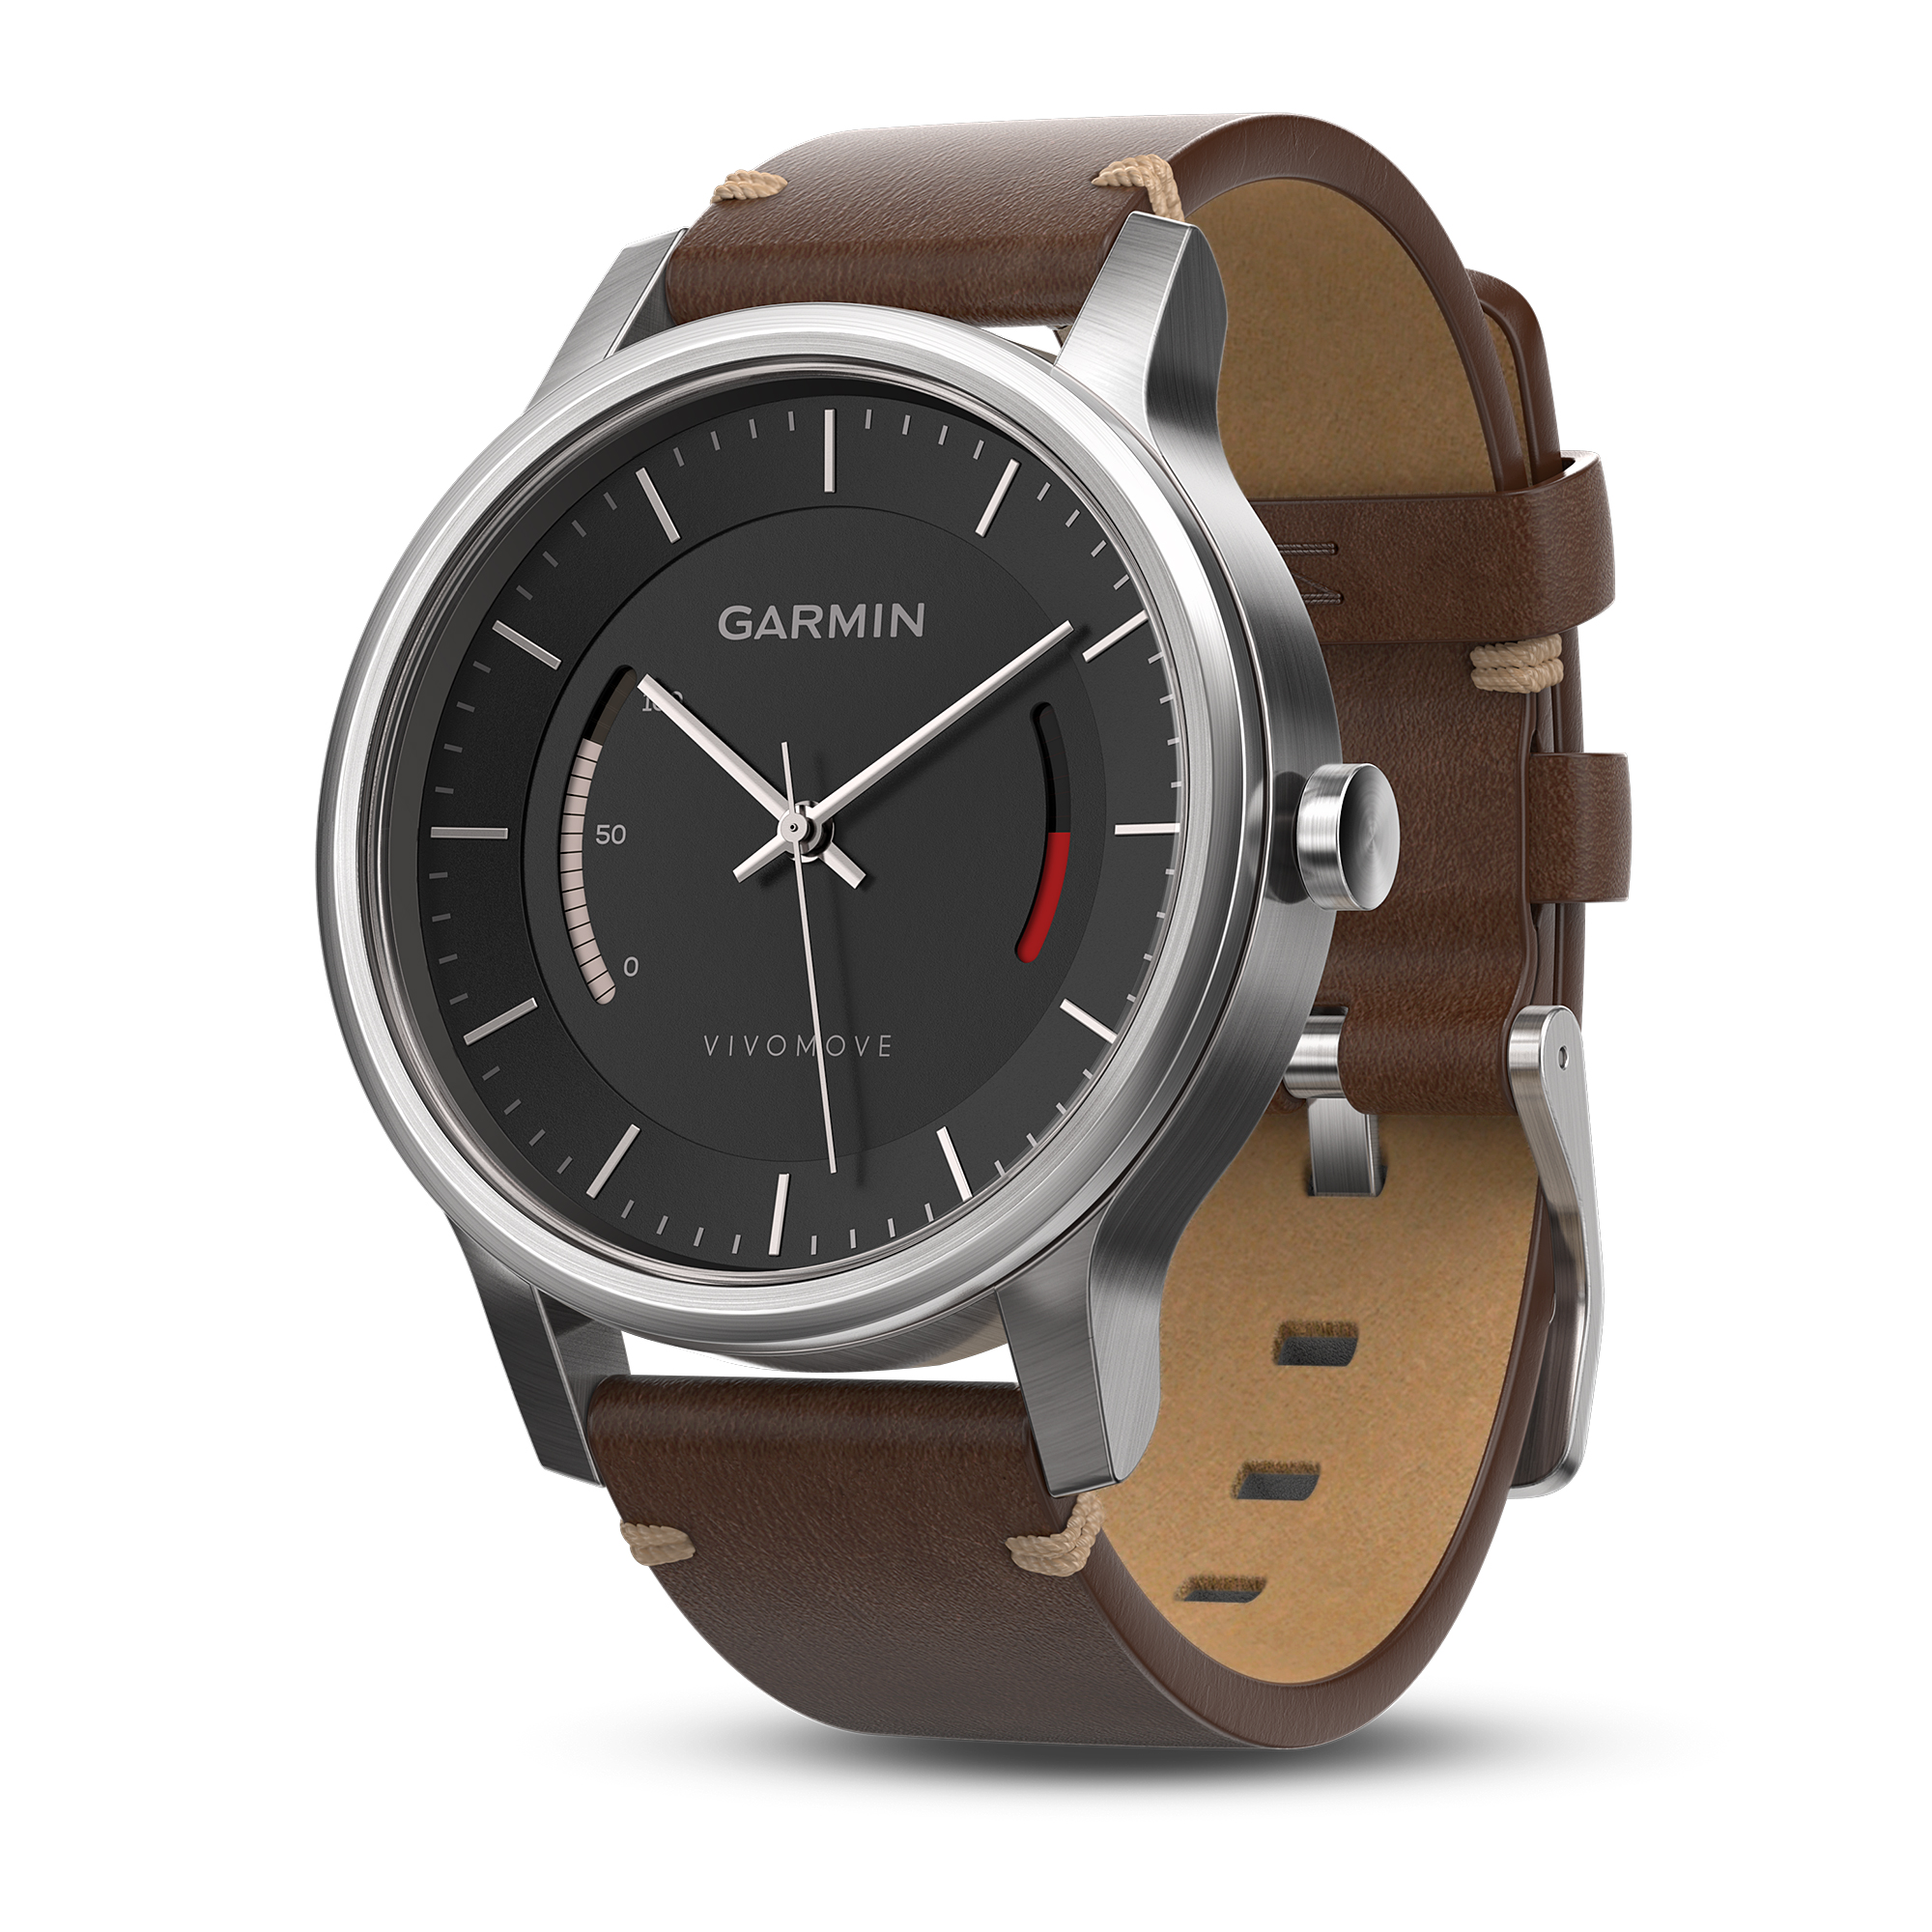 Garmin Vivomove Premium Activity Tracking Watch Stainless Steel W Leather Band